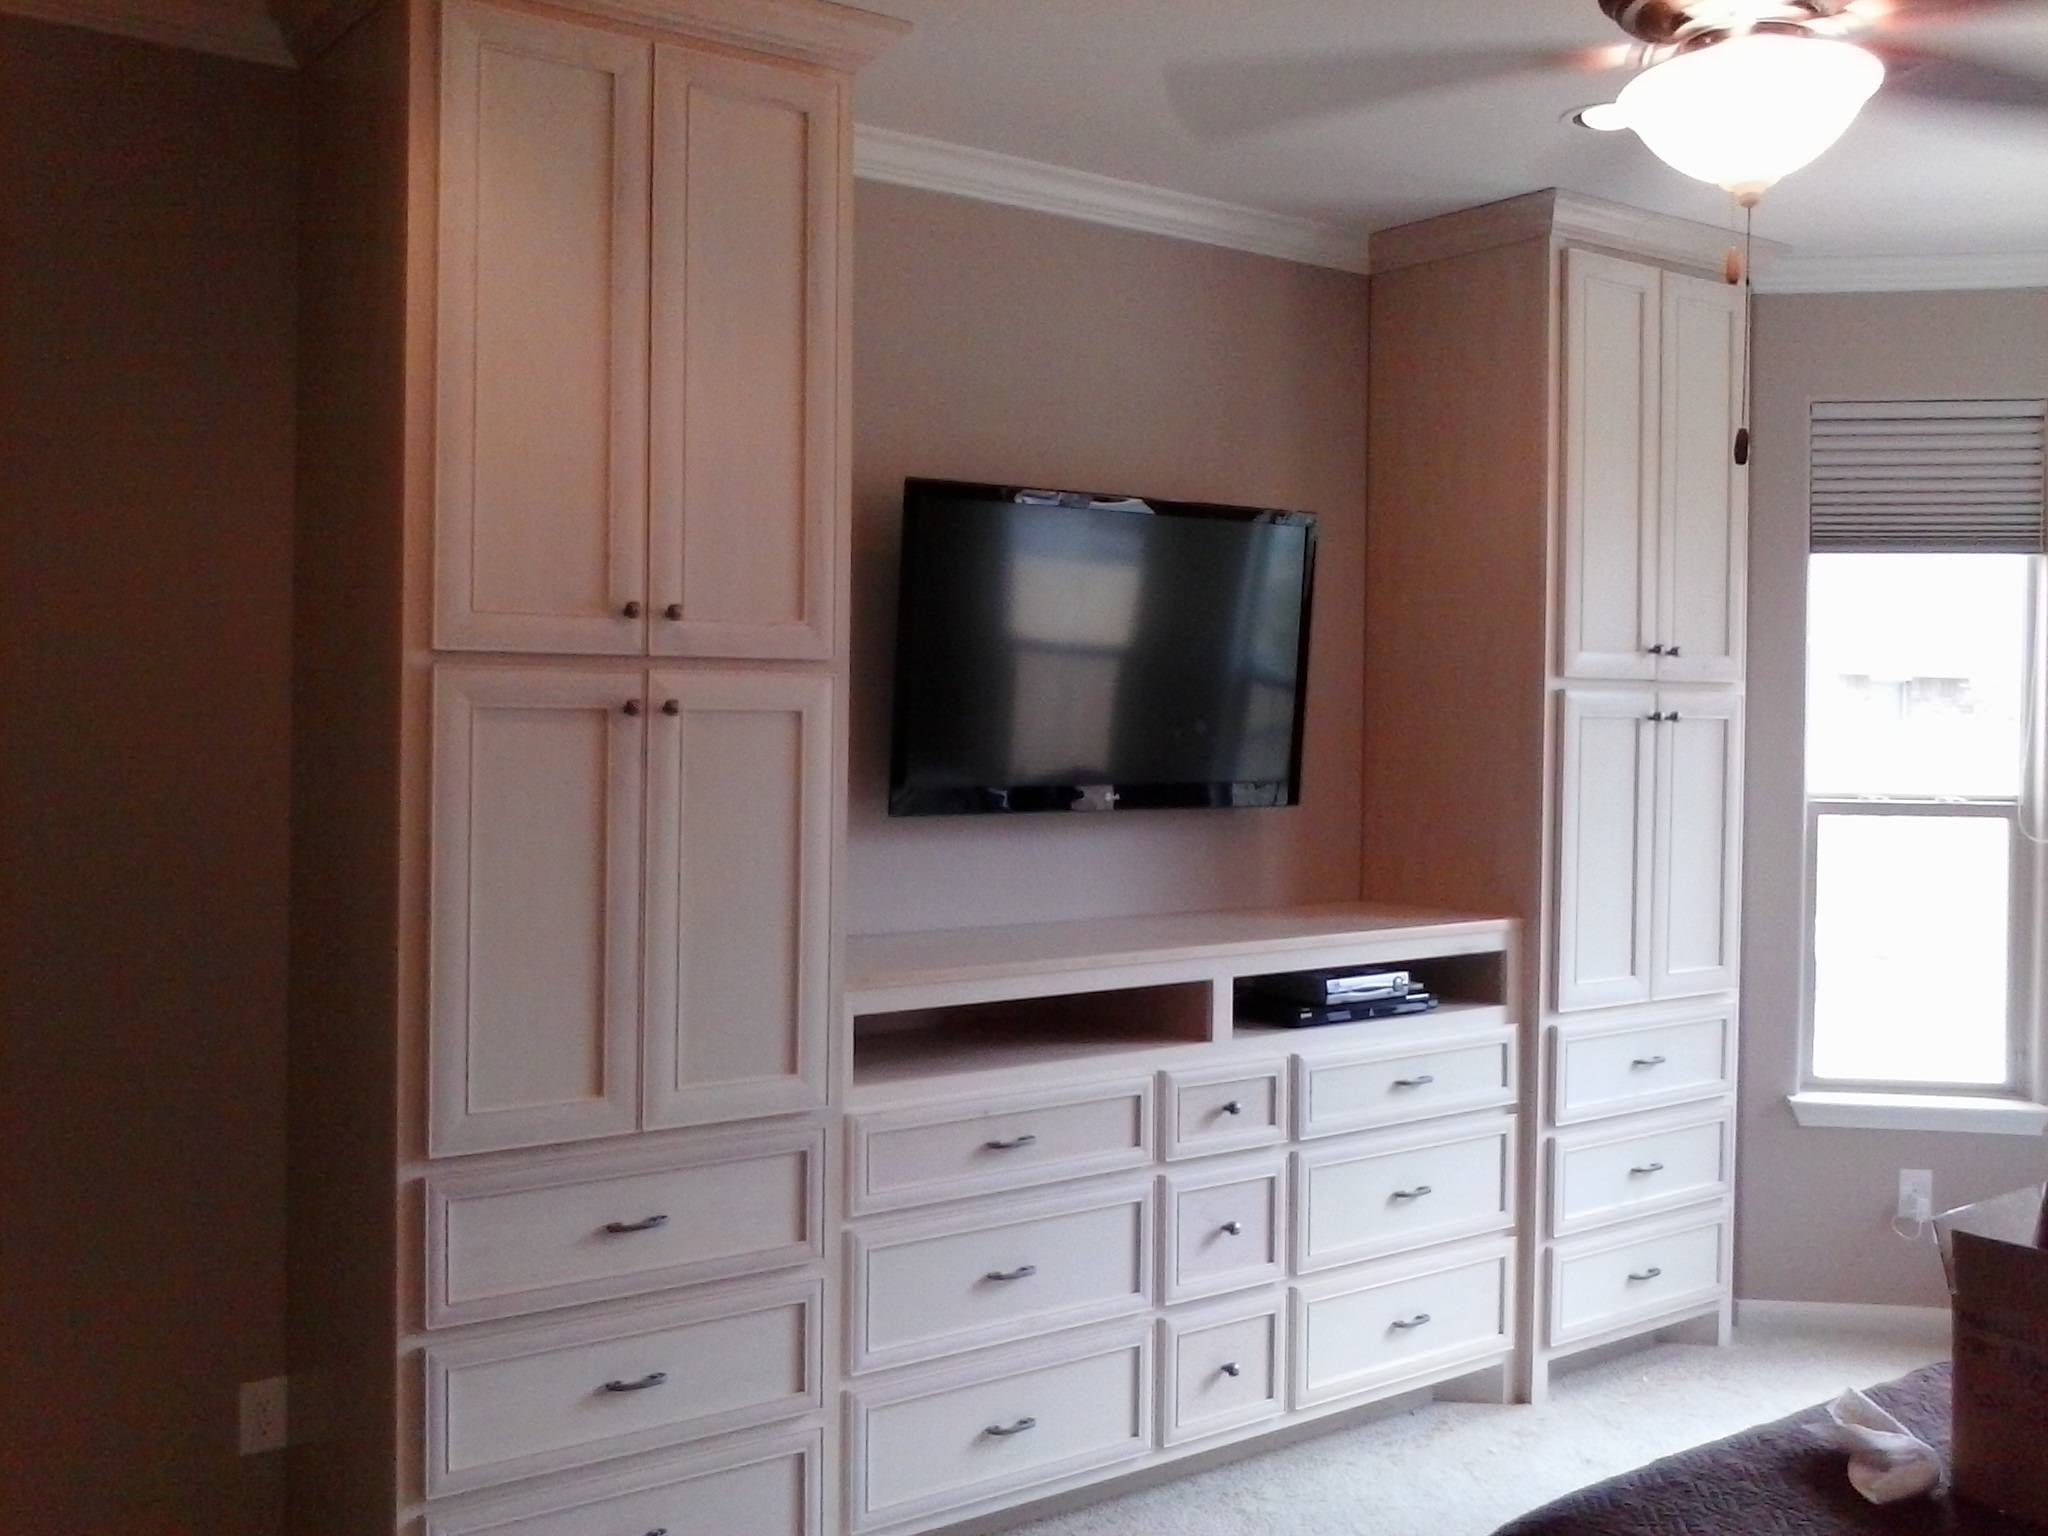 bedroom storage furniture. Bedroom wardrobe Image of  Wall Units with Drawers and TV Wardrobe